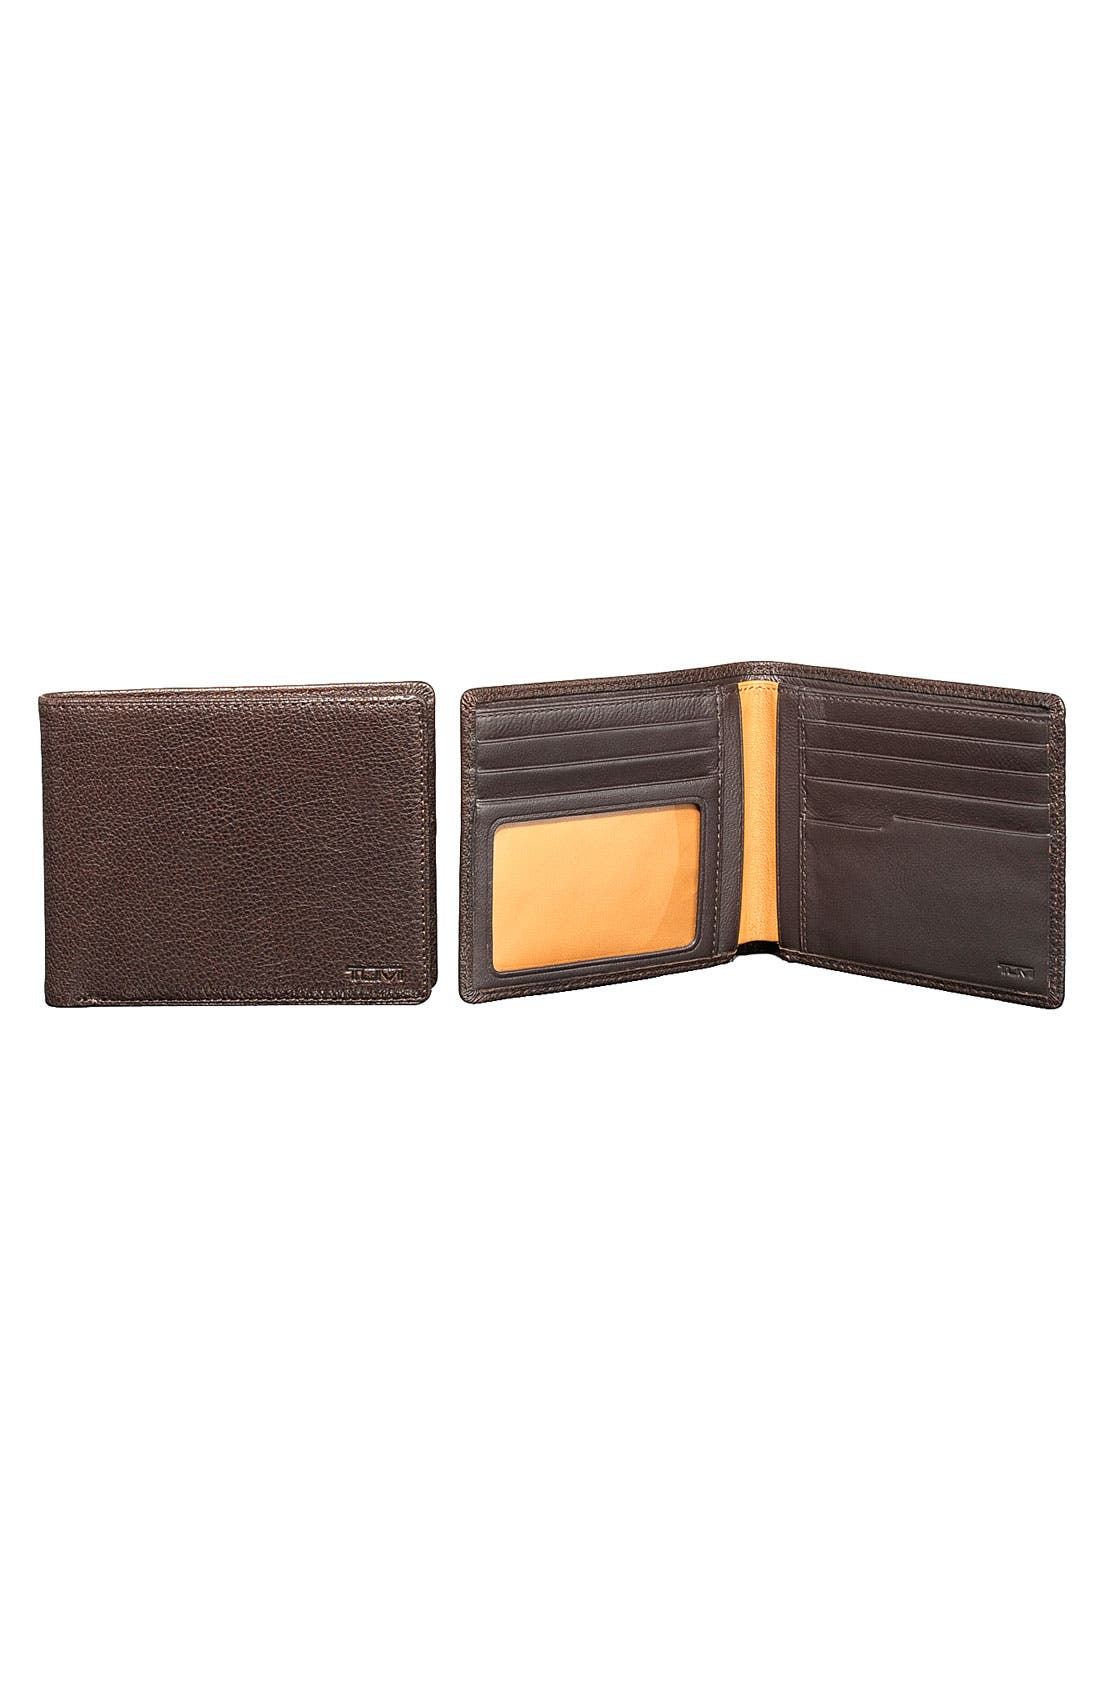 Main Image - Tumi 'Sierra - Global' Double Billfold ID Wallet